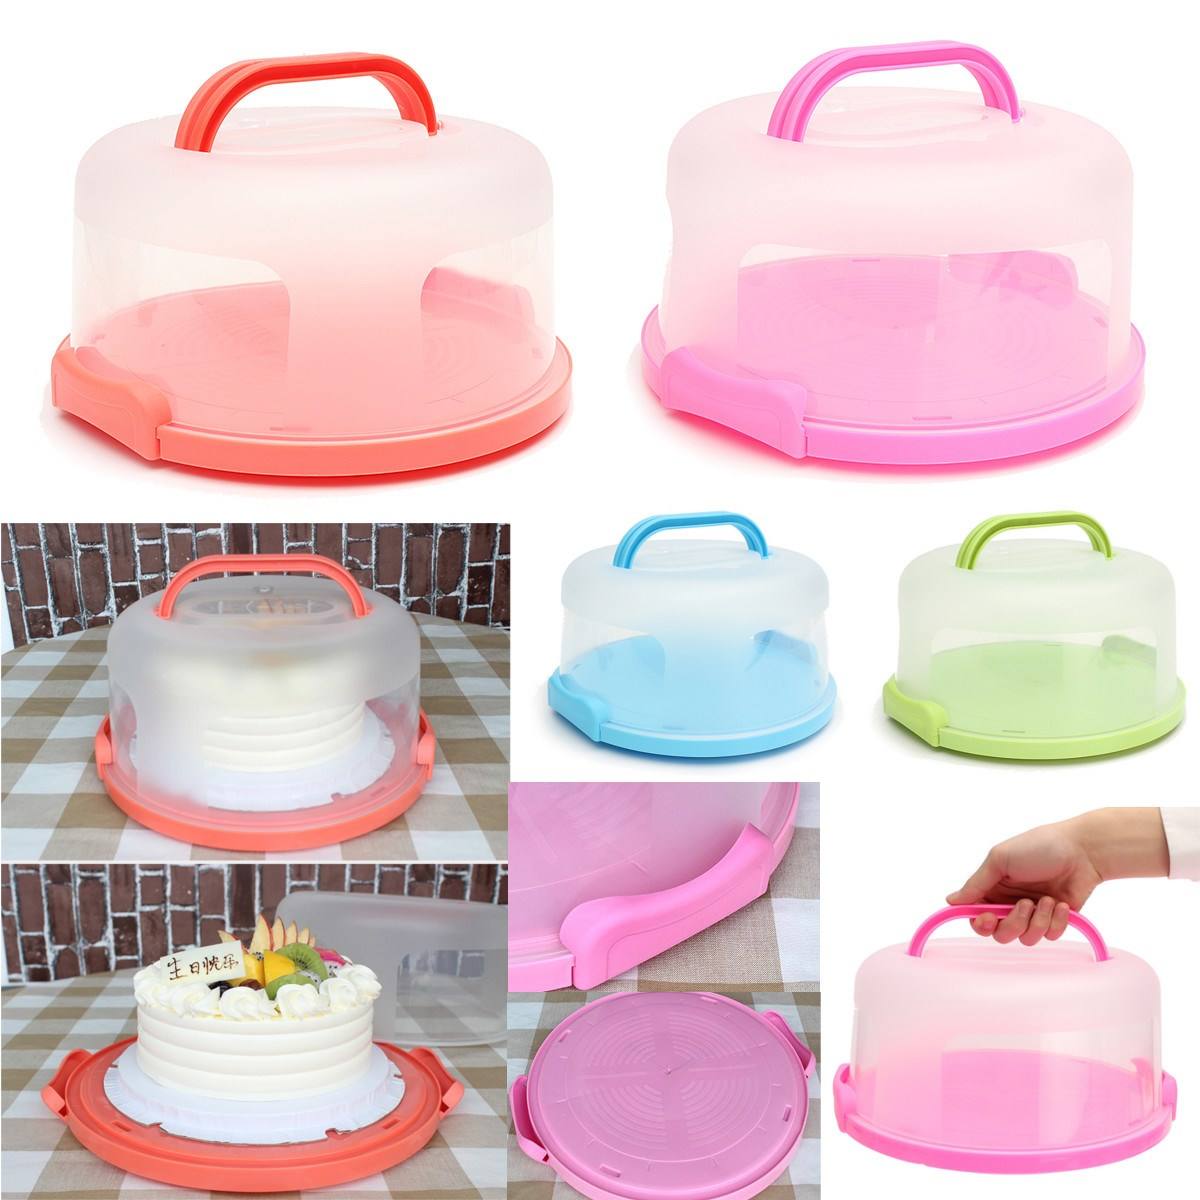 30X15cm Round Cake Carrier Handheld Plastic Pastry Storage Holder